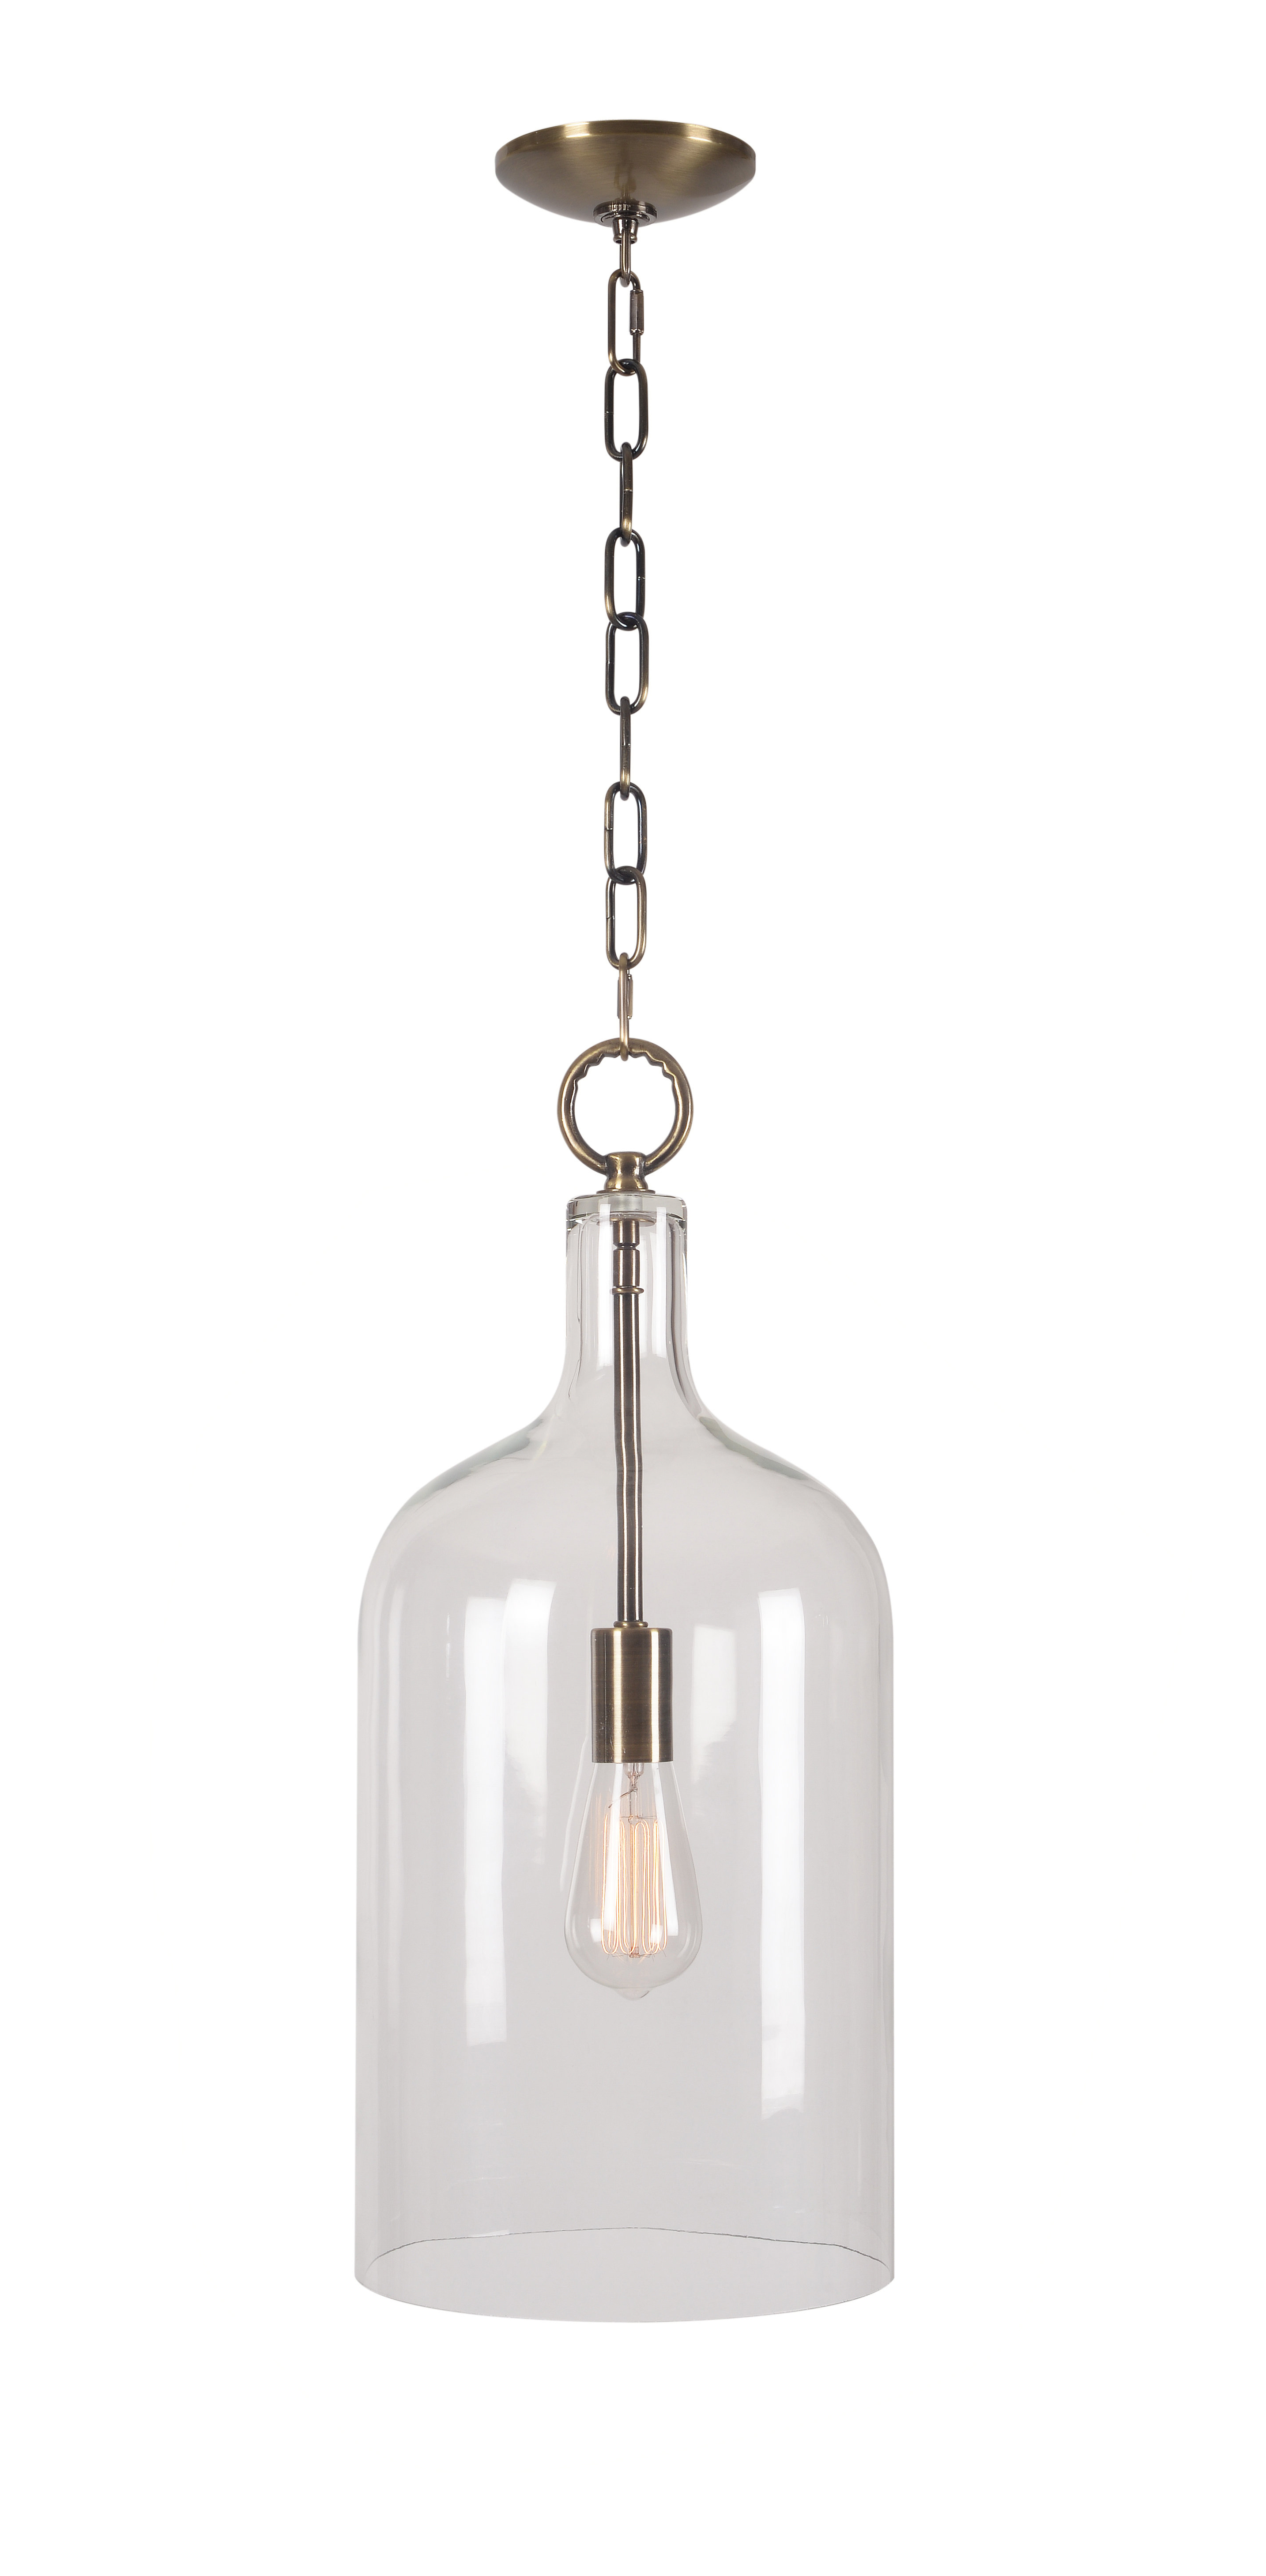 Well Known Giacinta 1 Light Single Bell Pendants Pertaining To Clematite 1 Light Single Jar Pendant (View 18 of 20)